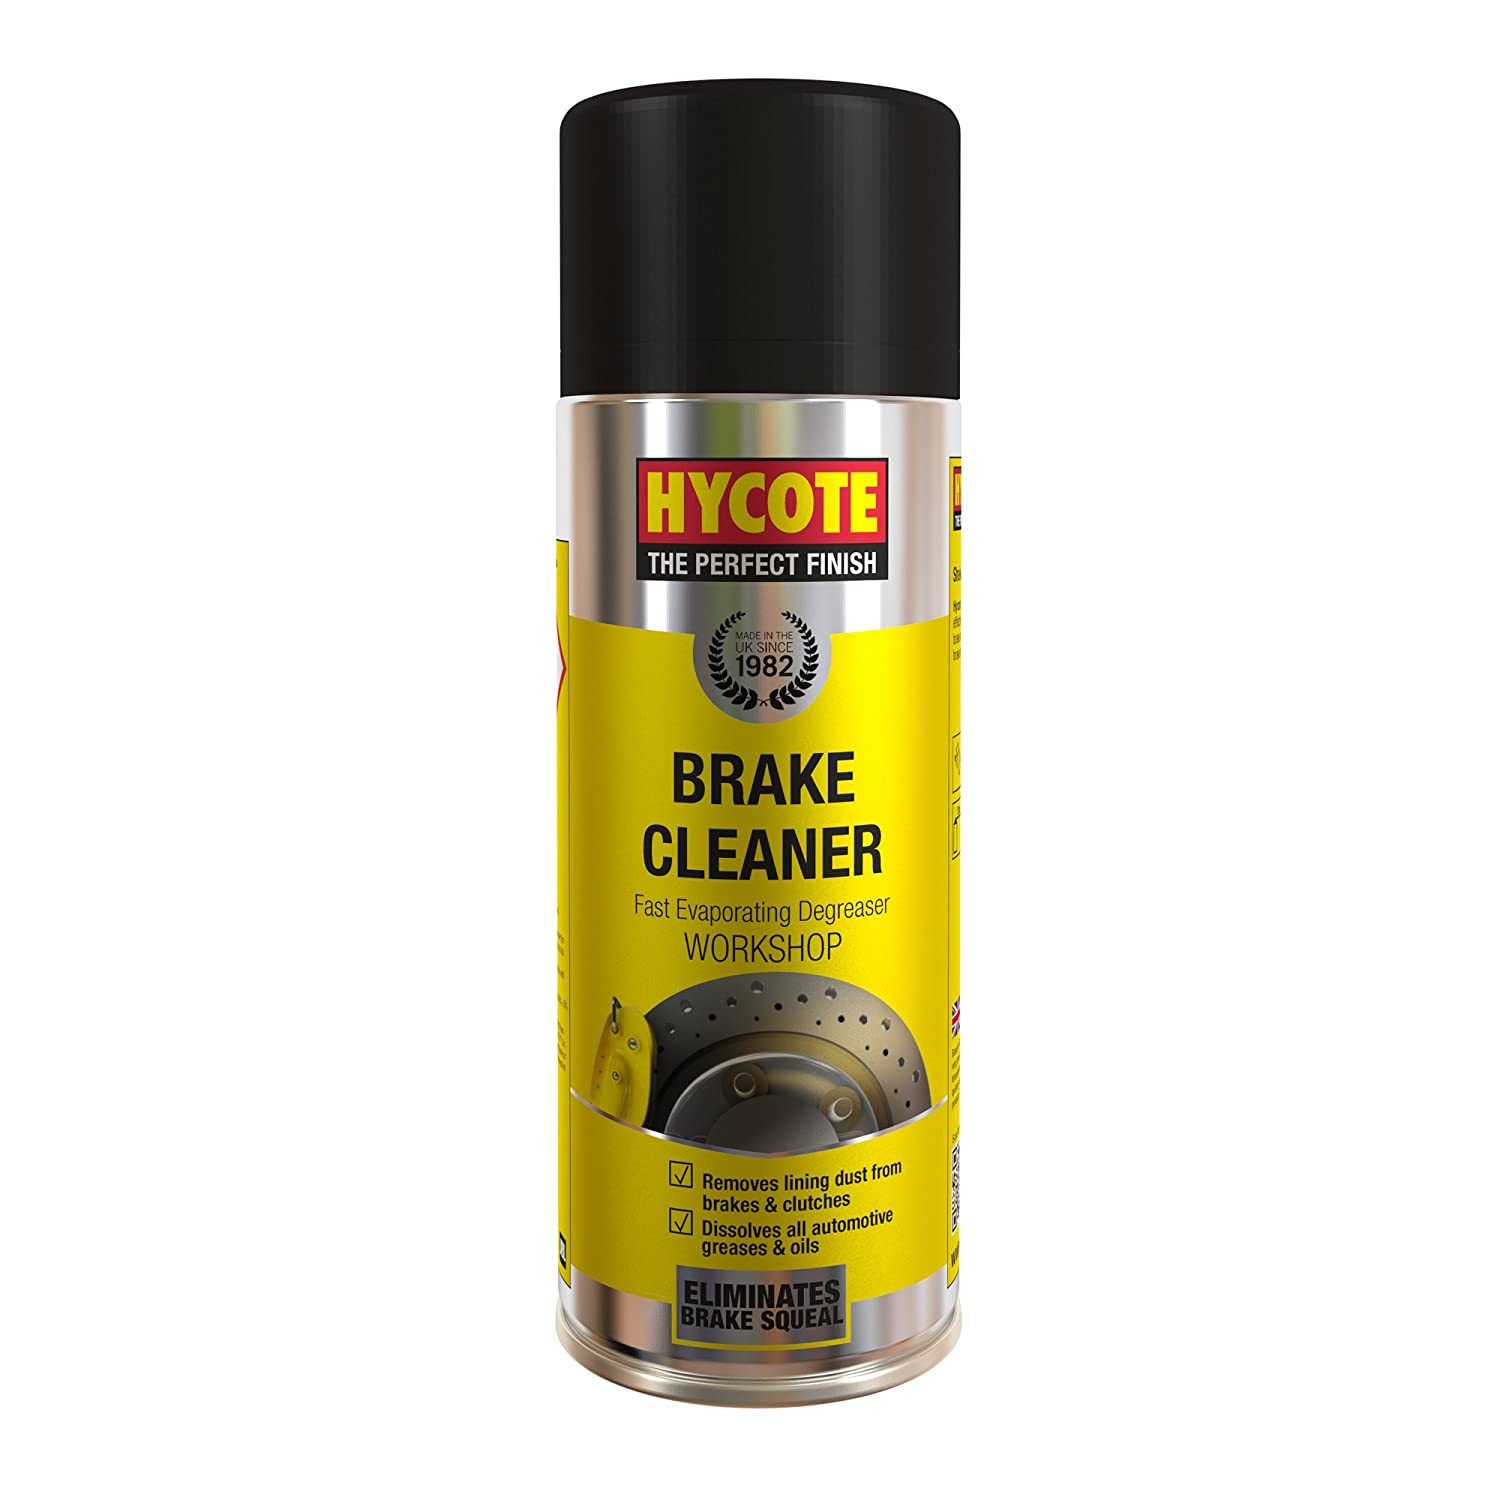 HYCOTE Maintrnance Brake Cleaner, 400ml XUK302